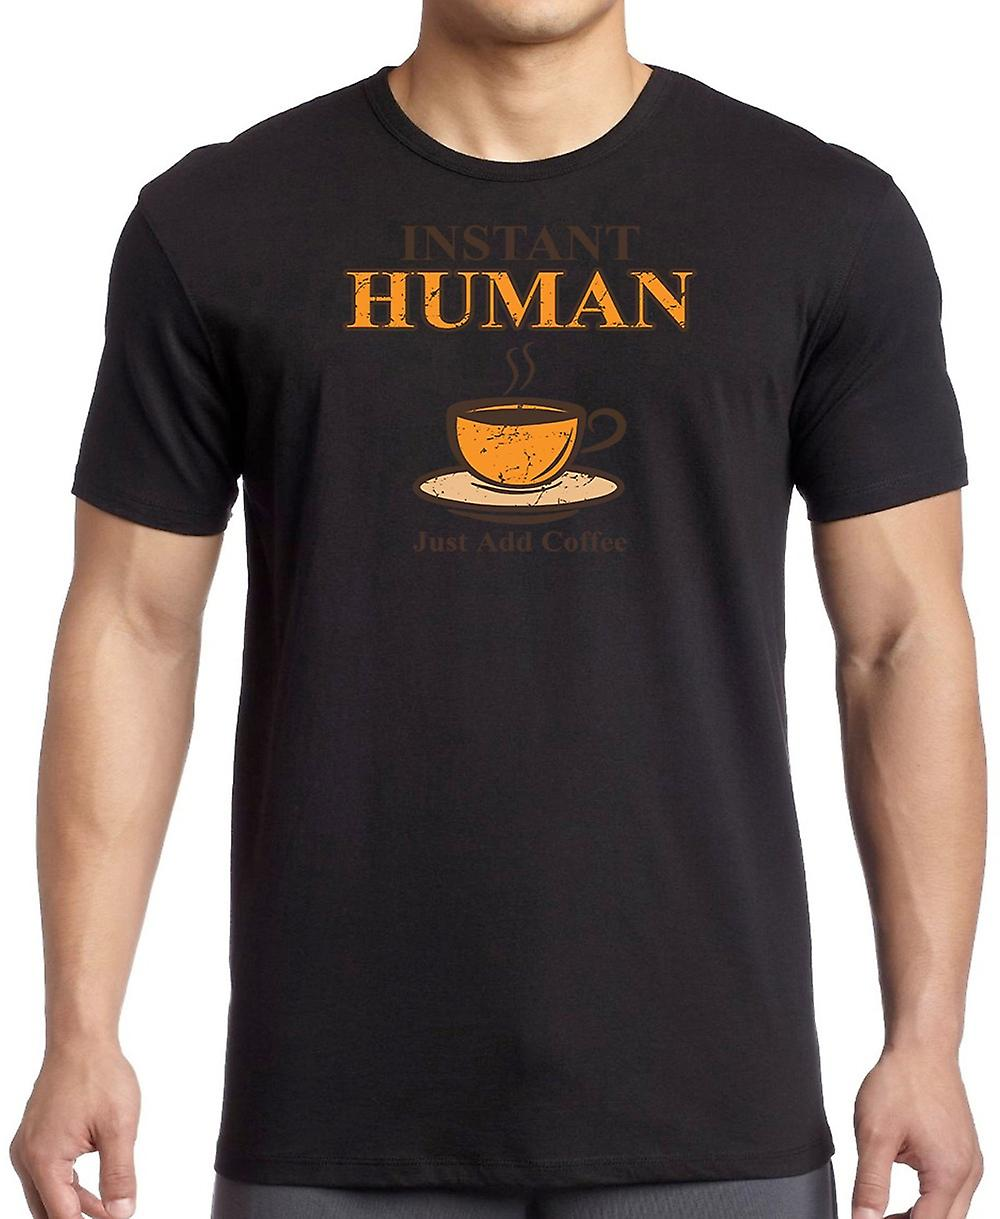 Instant Human Just Add Coffee - Funny Women T Shirt